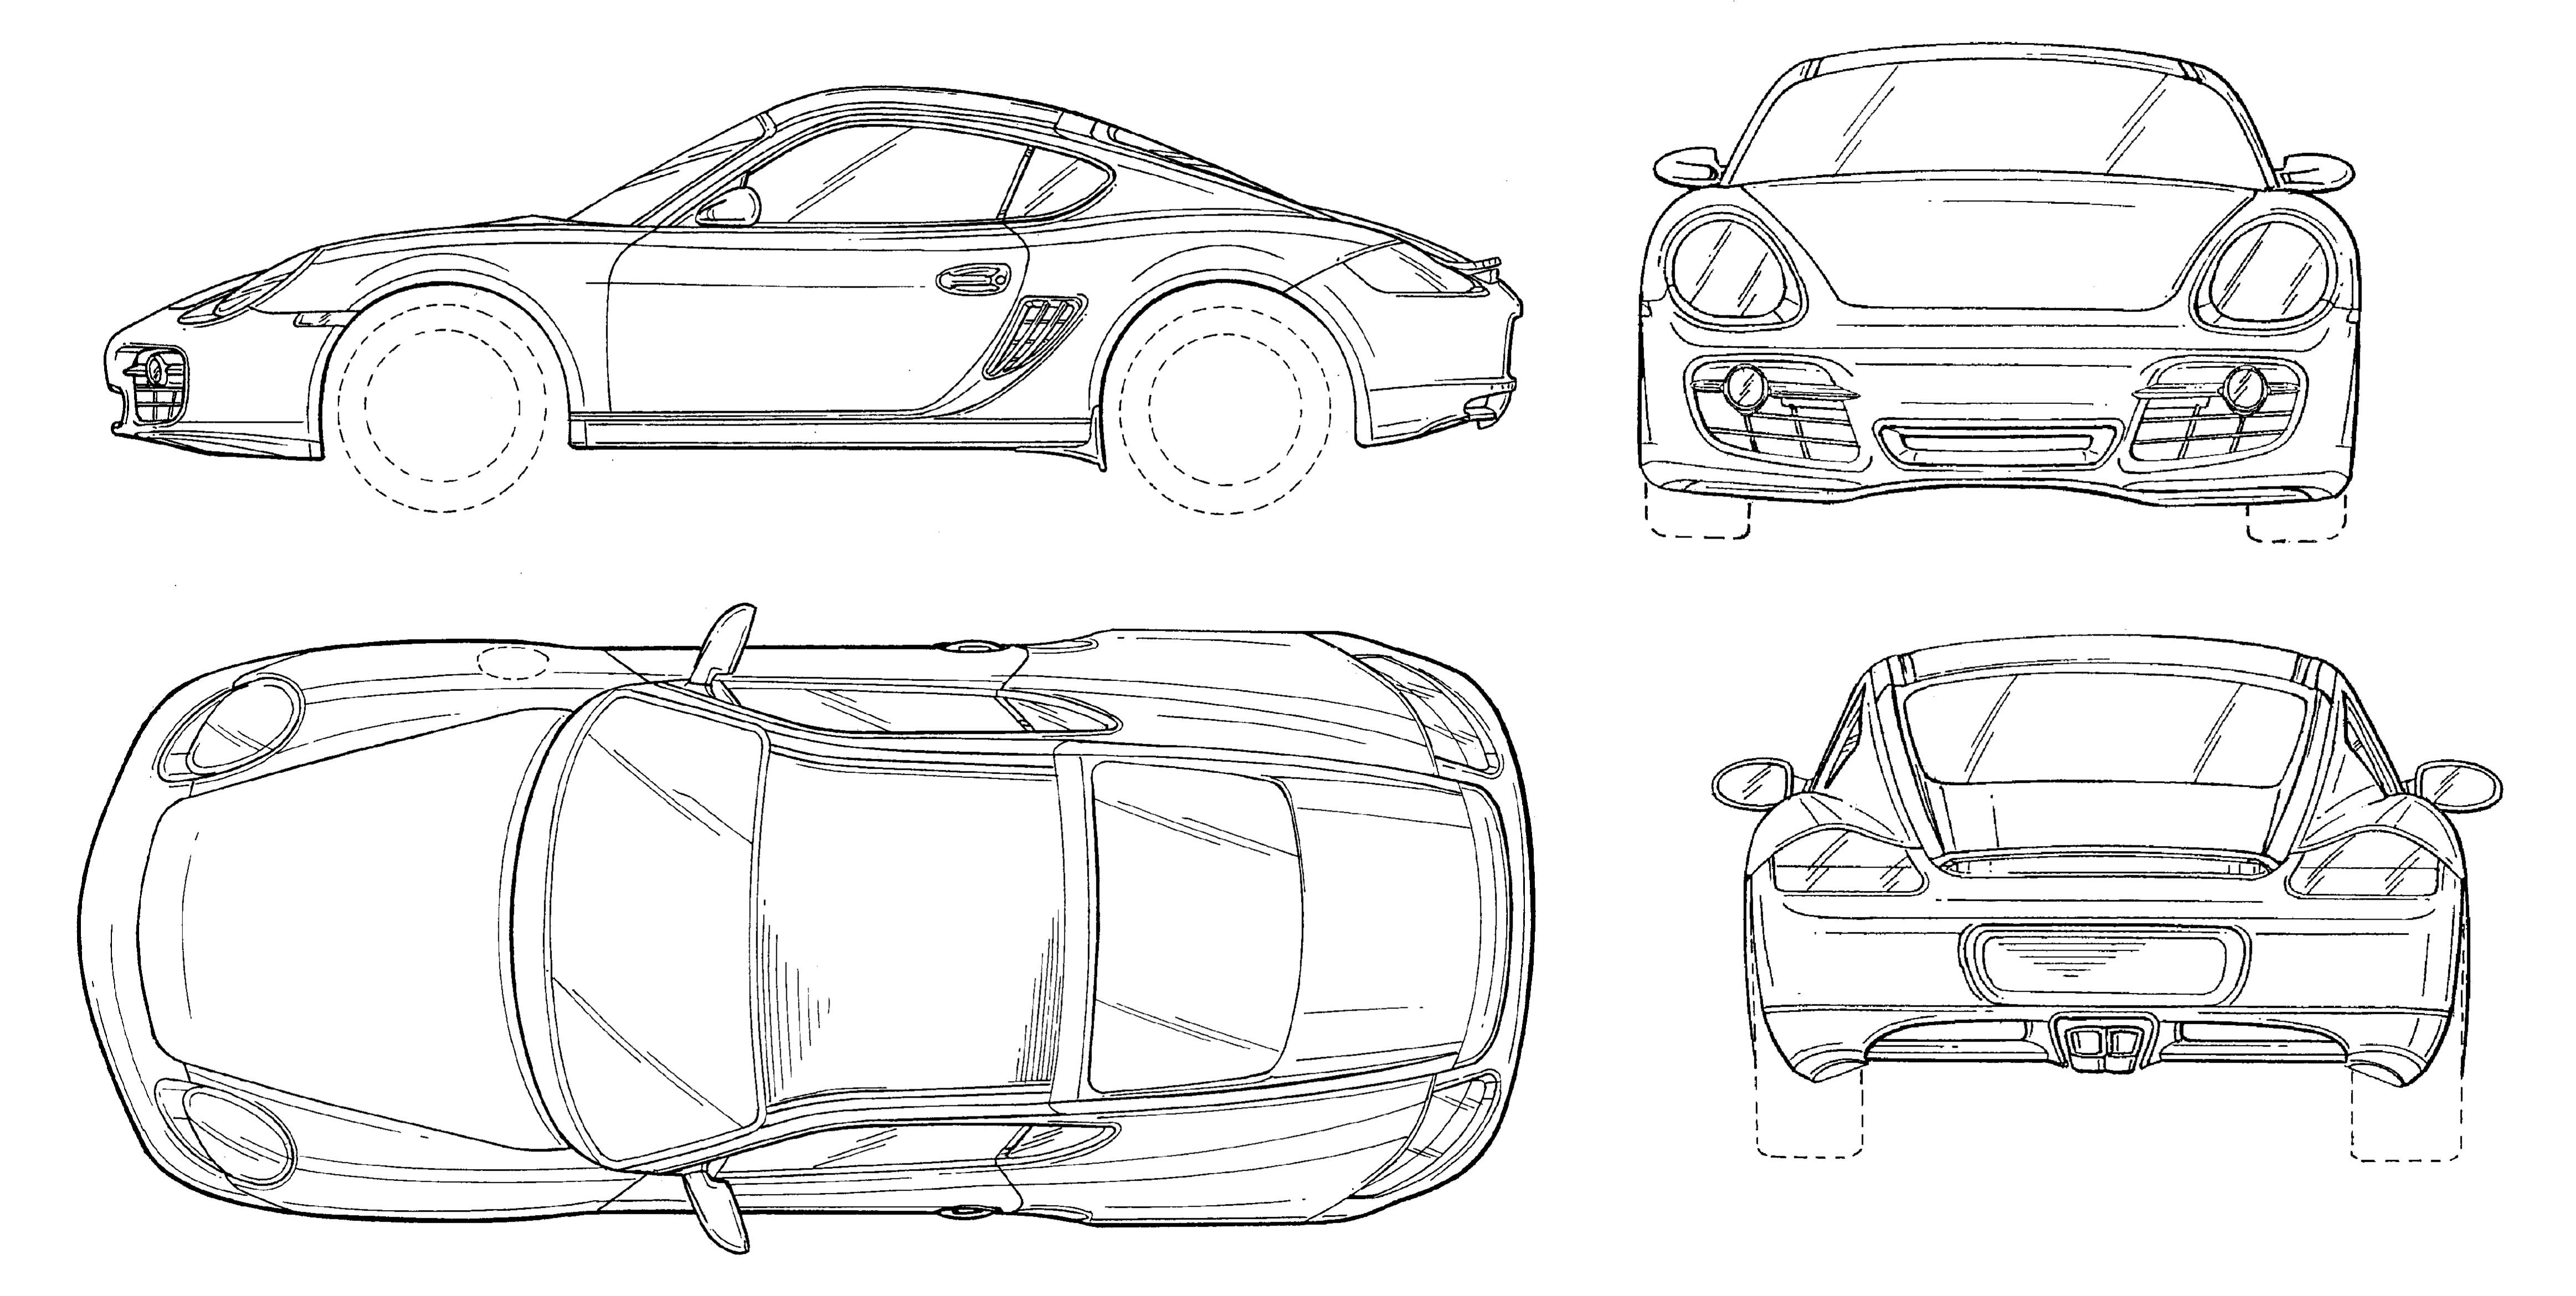 Line Drawing Porsche Cayman Wiring Diagrams Pad2pad Layout Software Cad Printed Circuit Board Design Xtronic Blueprint Cars Motorcycles Rh Pinterest Com Audi R8